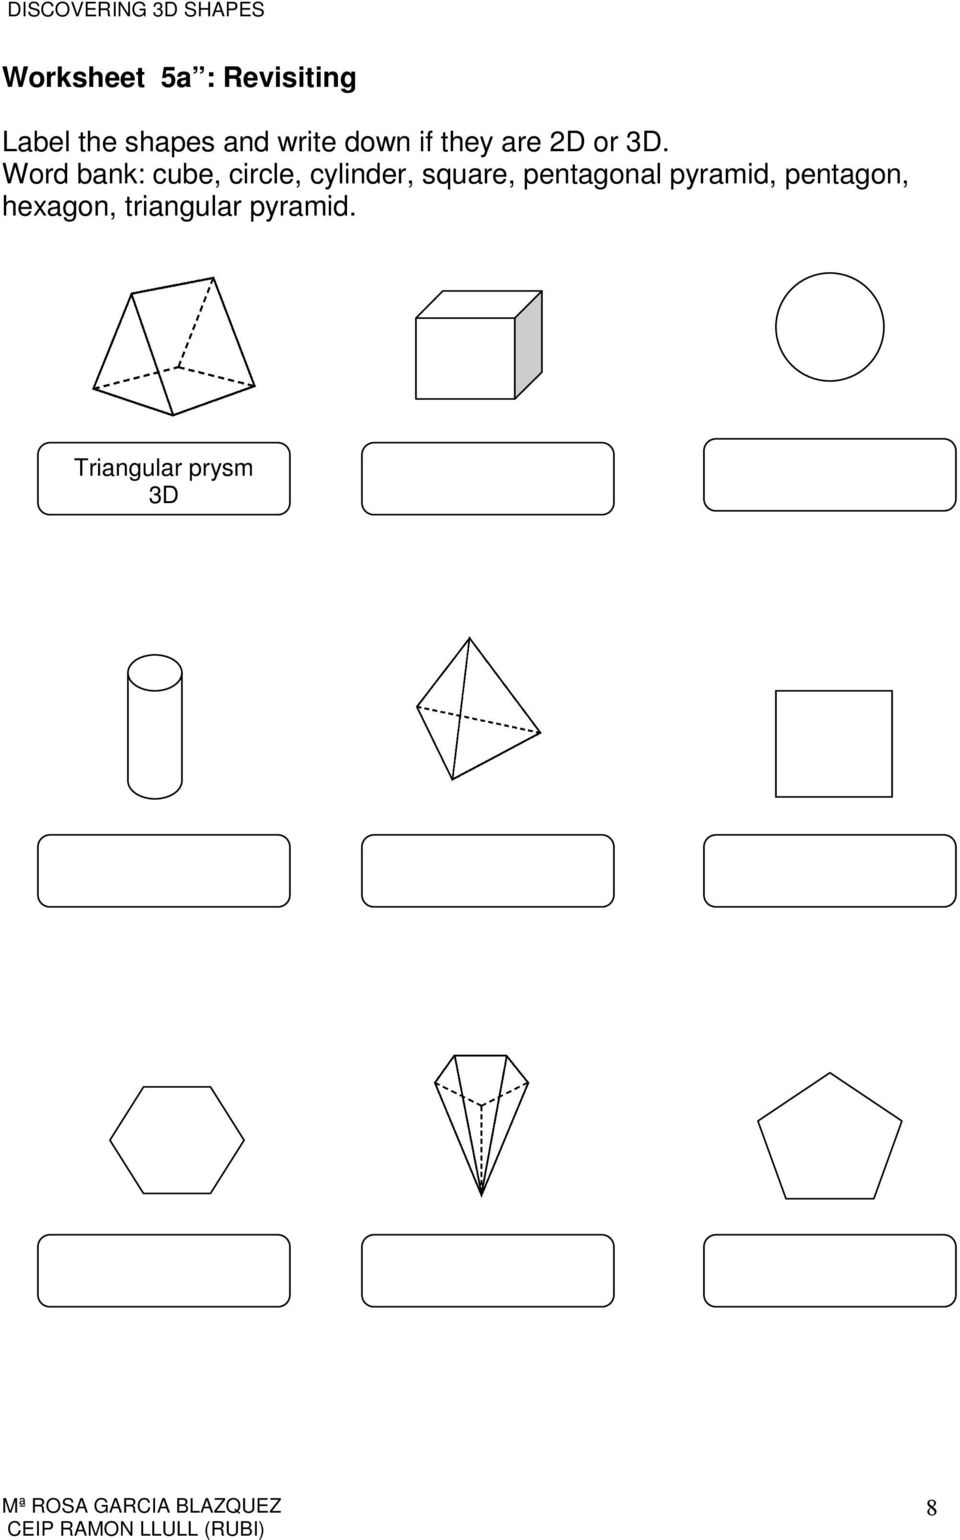 medium resolution of DISCOVERING 3D SHAPES - PDF Free Download